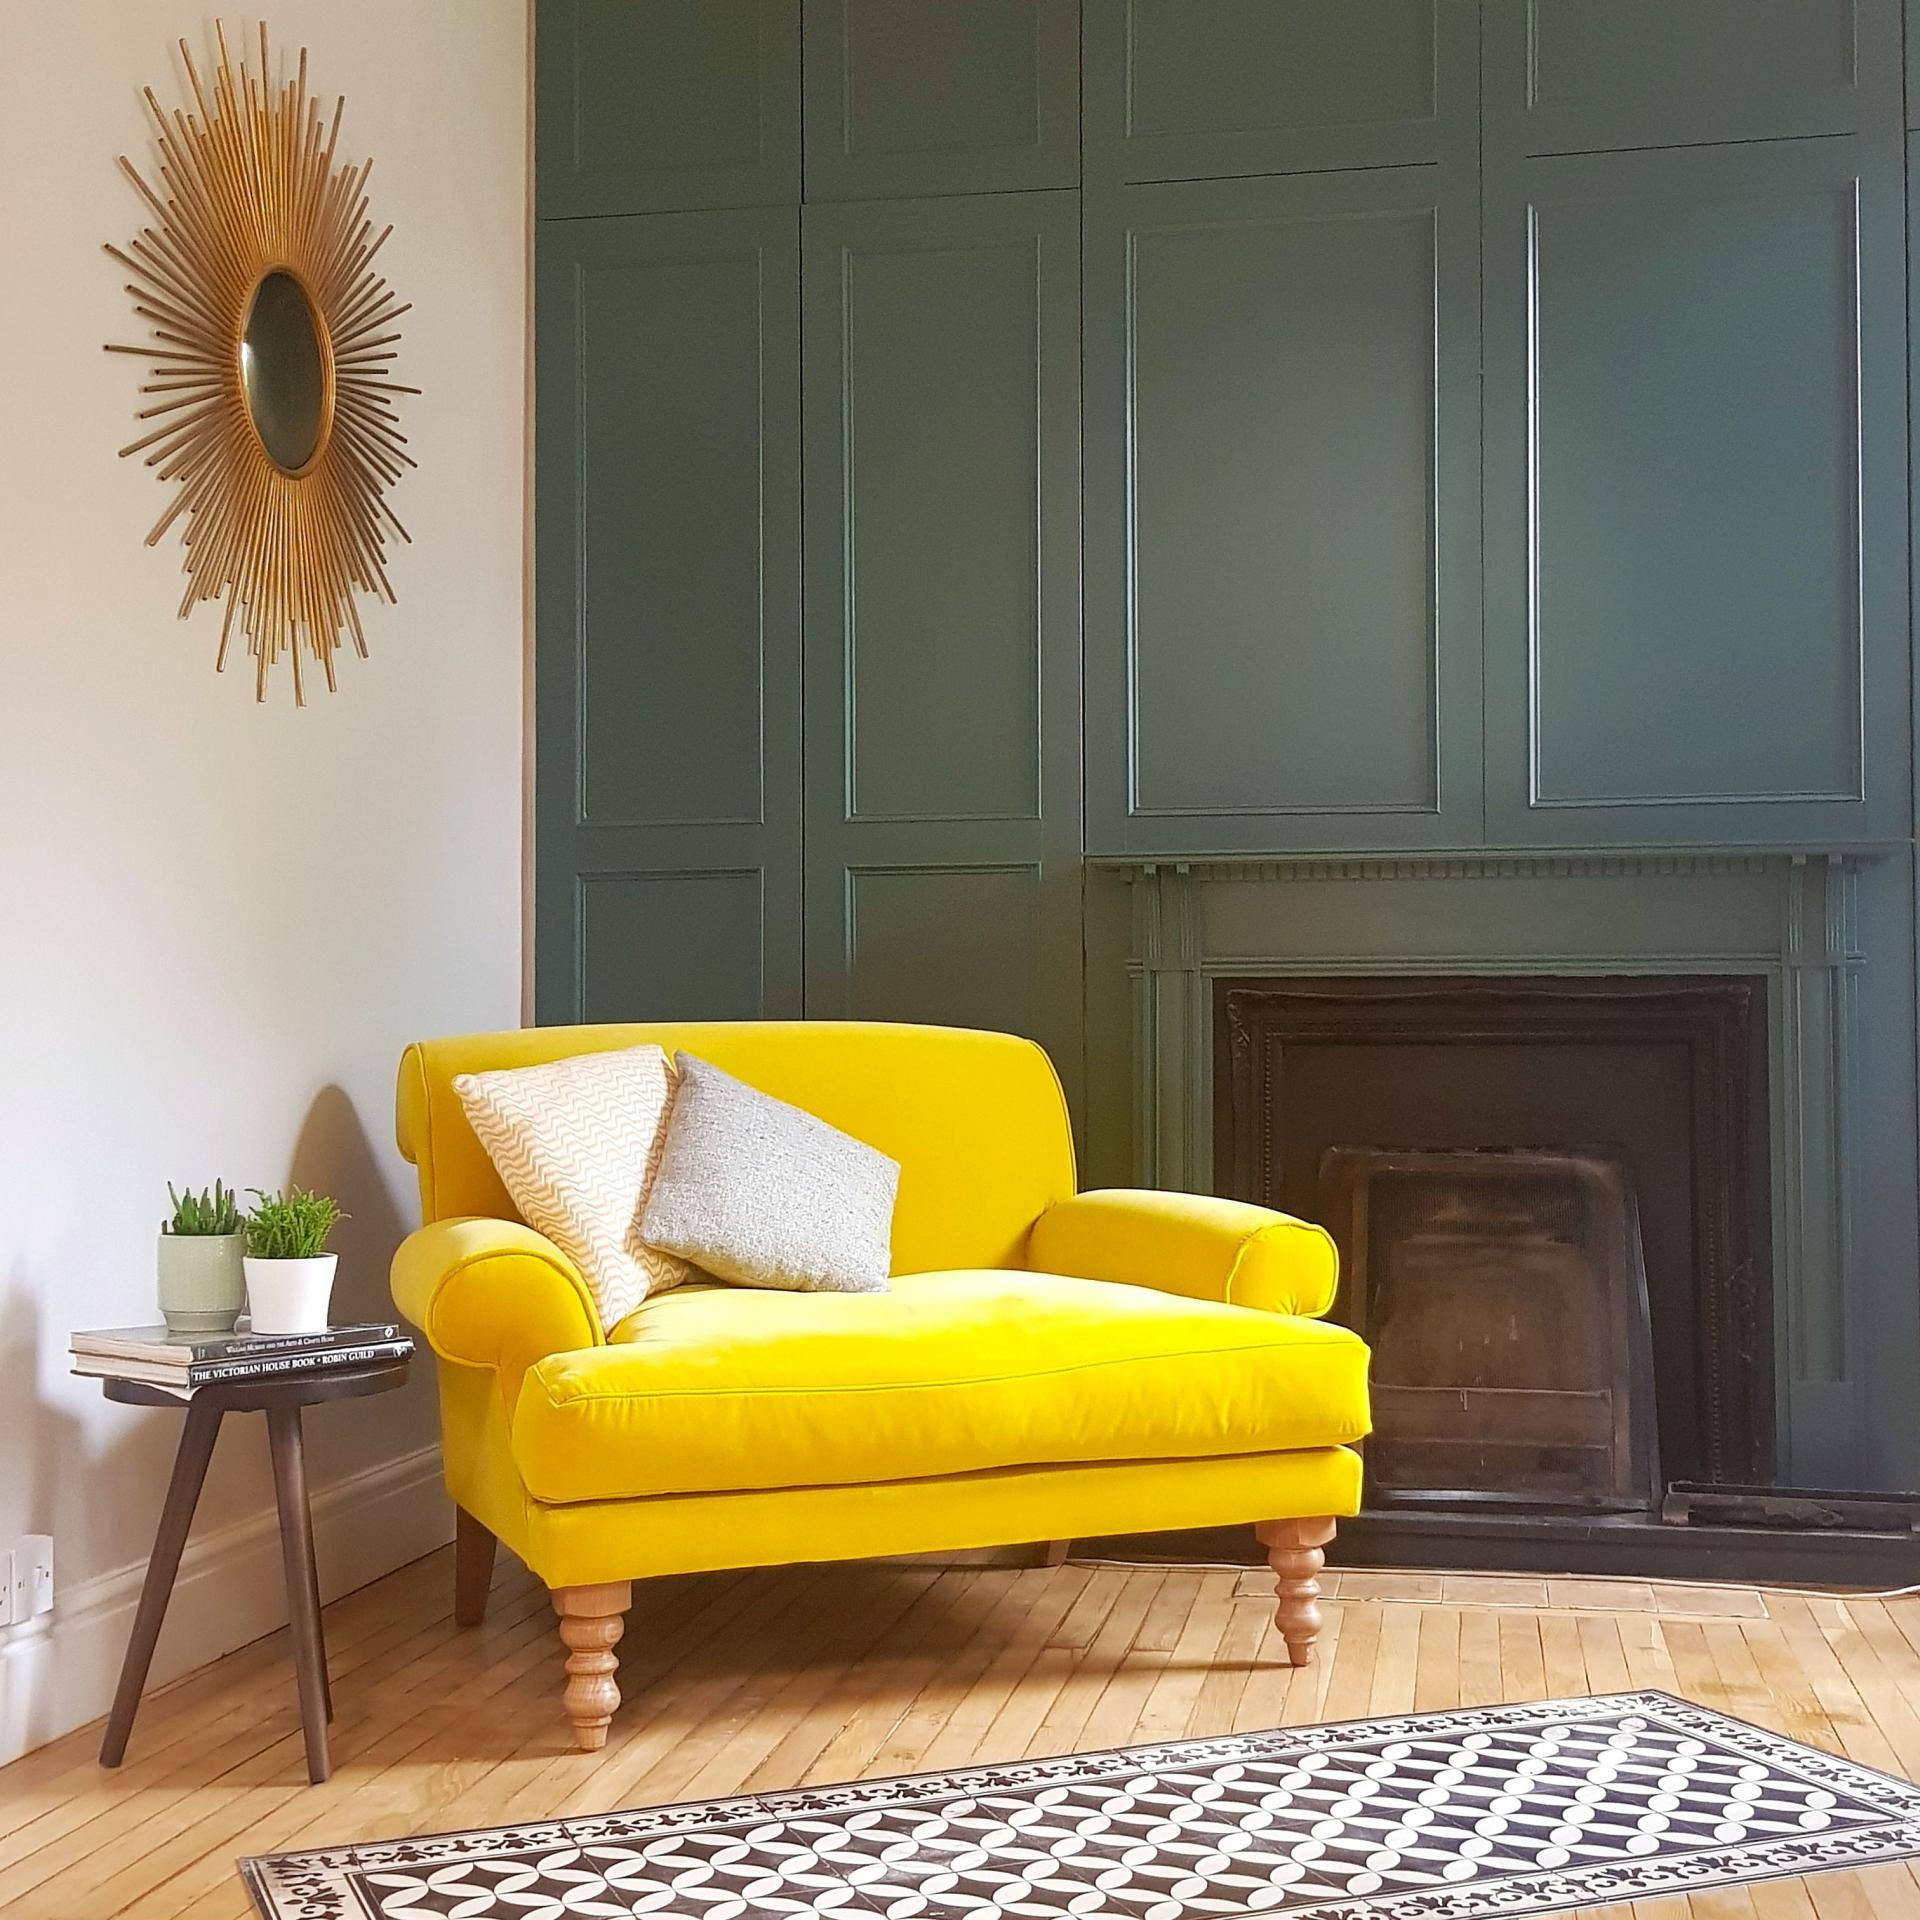 Green Living Room Inspiration| Today we're talking inspiration for a green living room. Green is a really versatile colour to decorate your home with. But, which colours and tones work well? What kind of accessories work with green? This post gives you ideas for pulling together an elegant green colour palette and pieces for your home. Read more: kittyandb.com #greenlivingroom #greencolorpalette #interiordecoratinginspiration #greenaesthetic #colourfulhomedecor